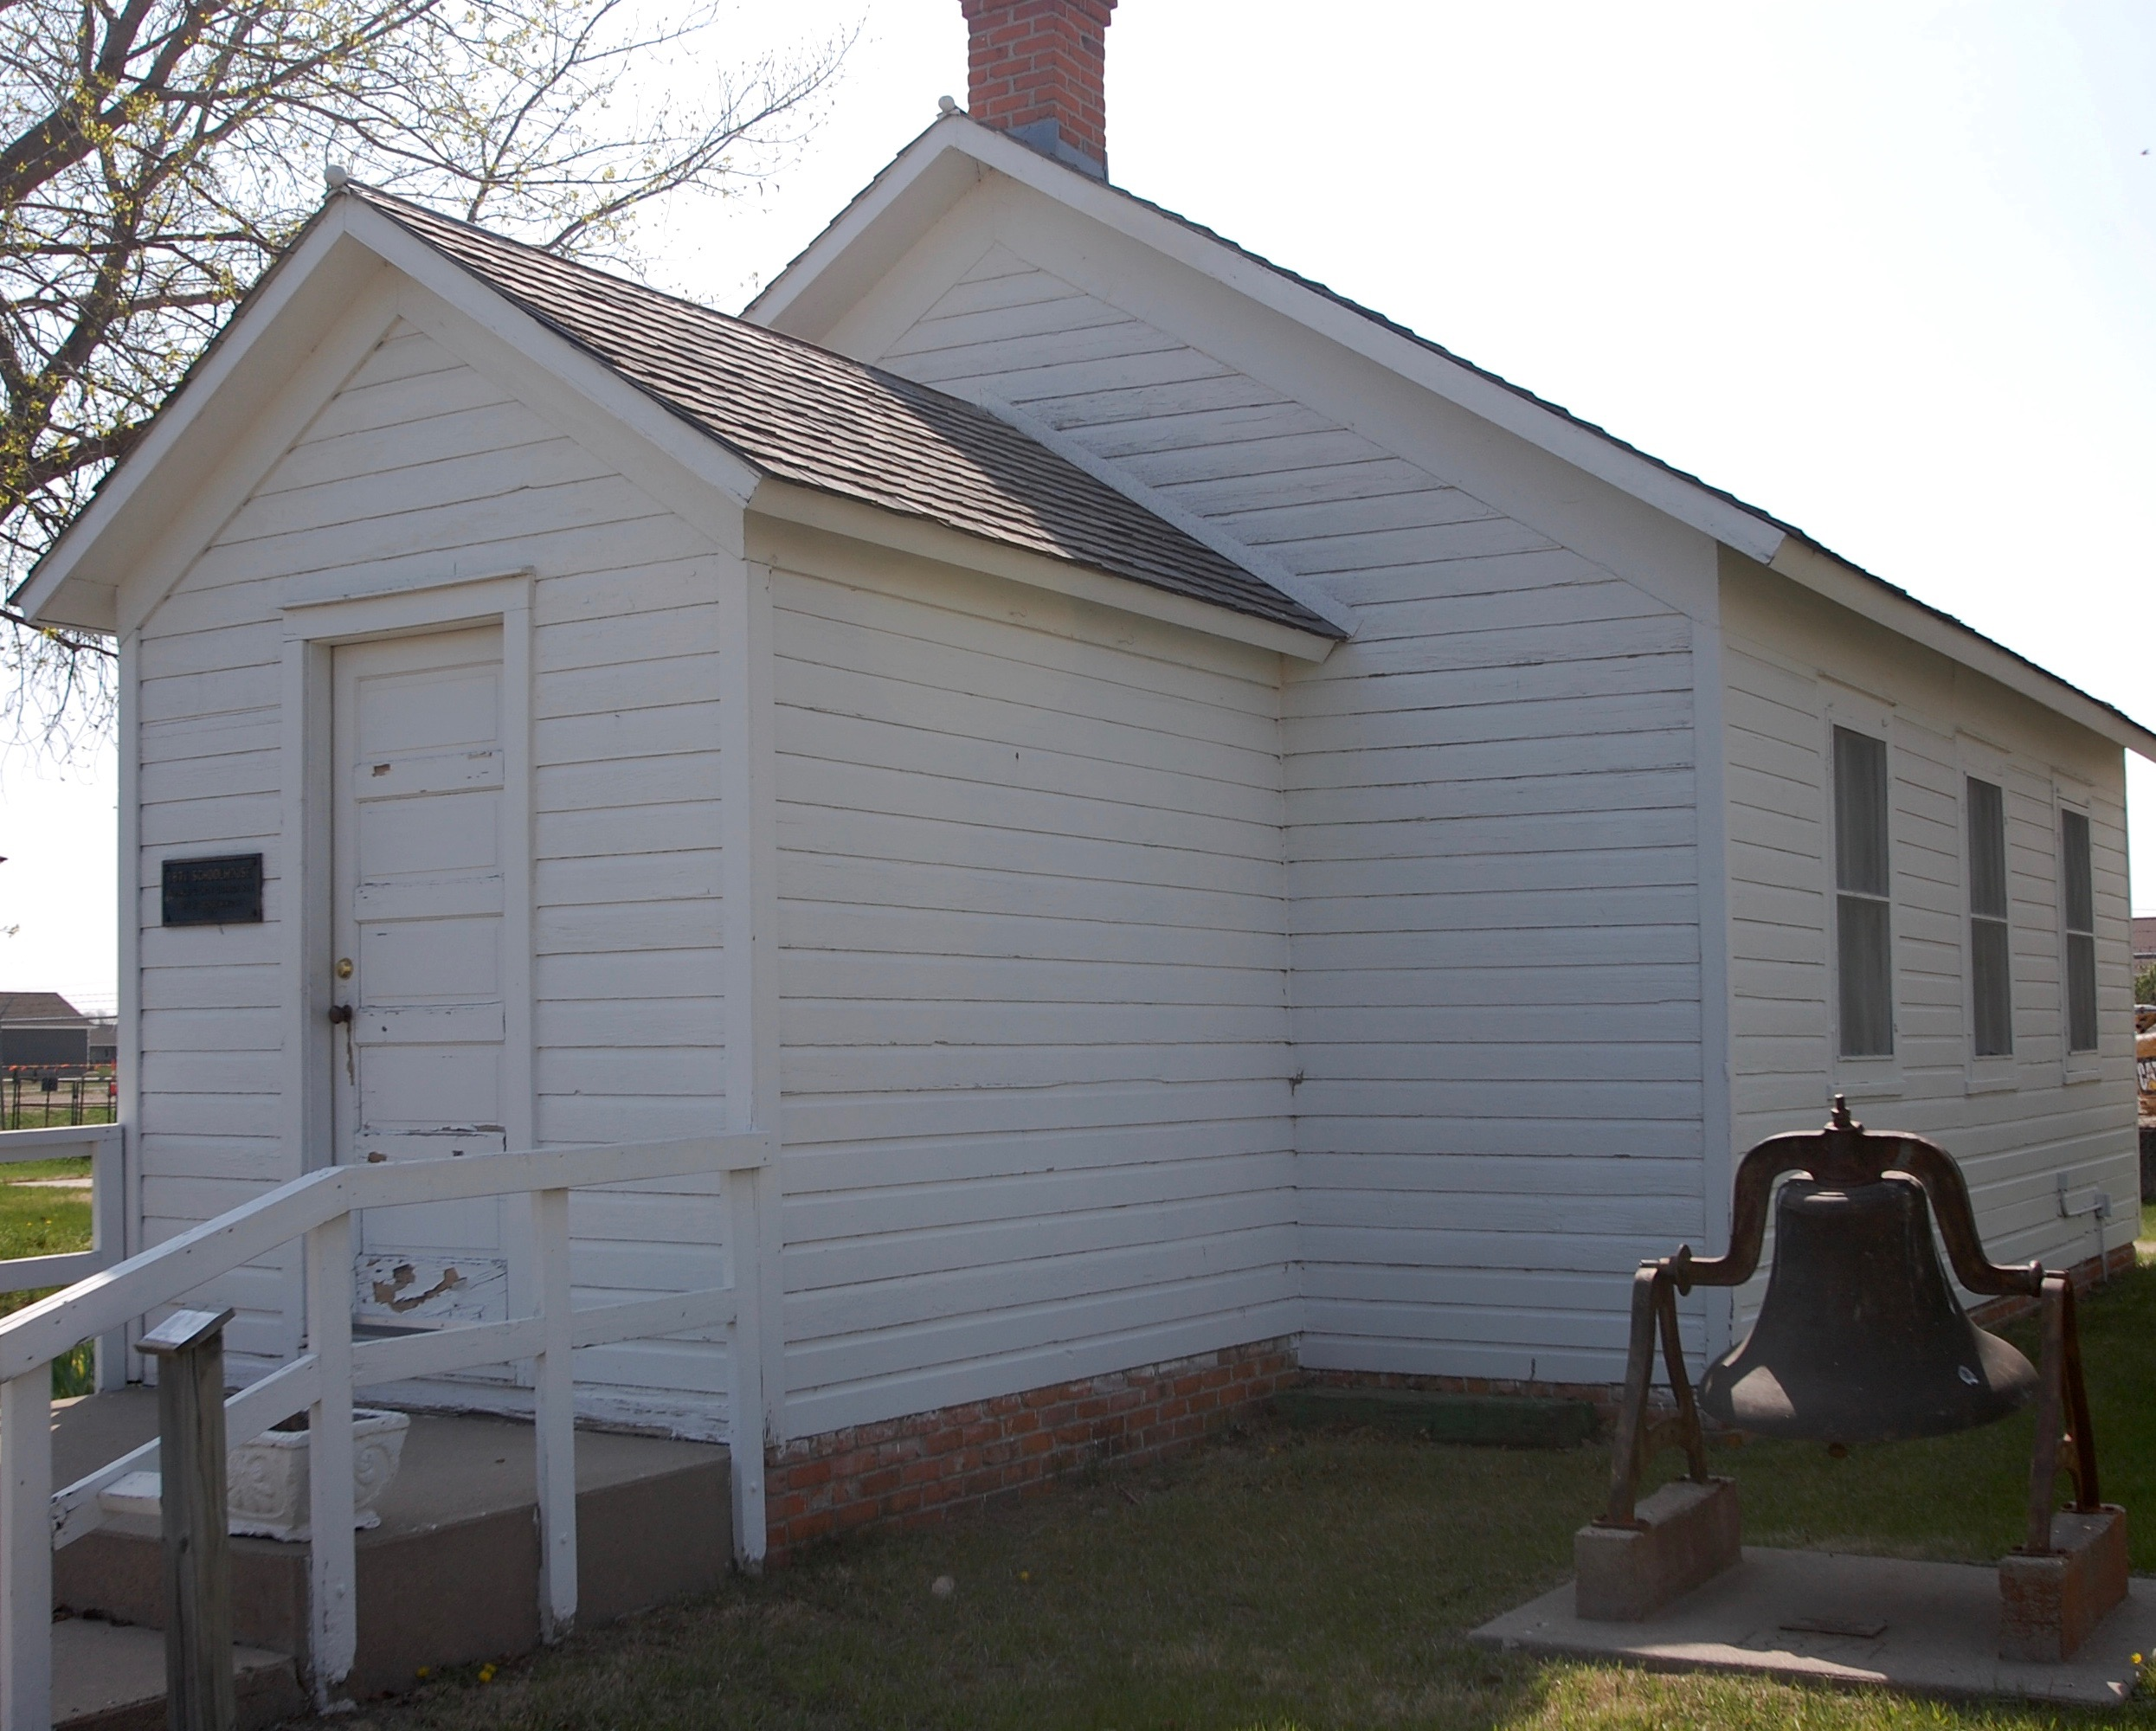 Front of the Schoolhouse